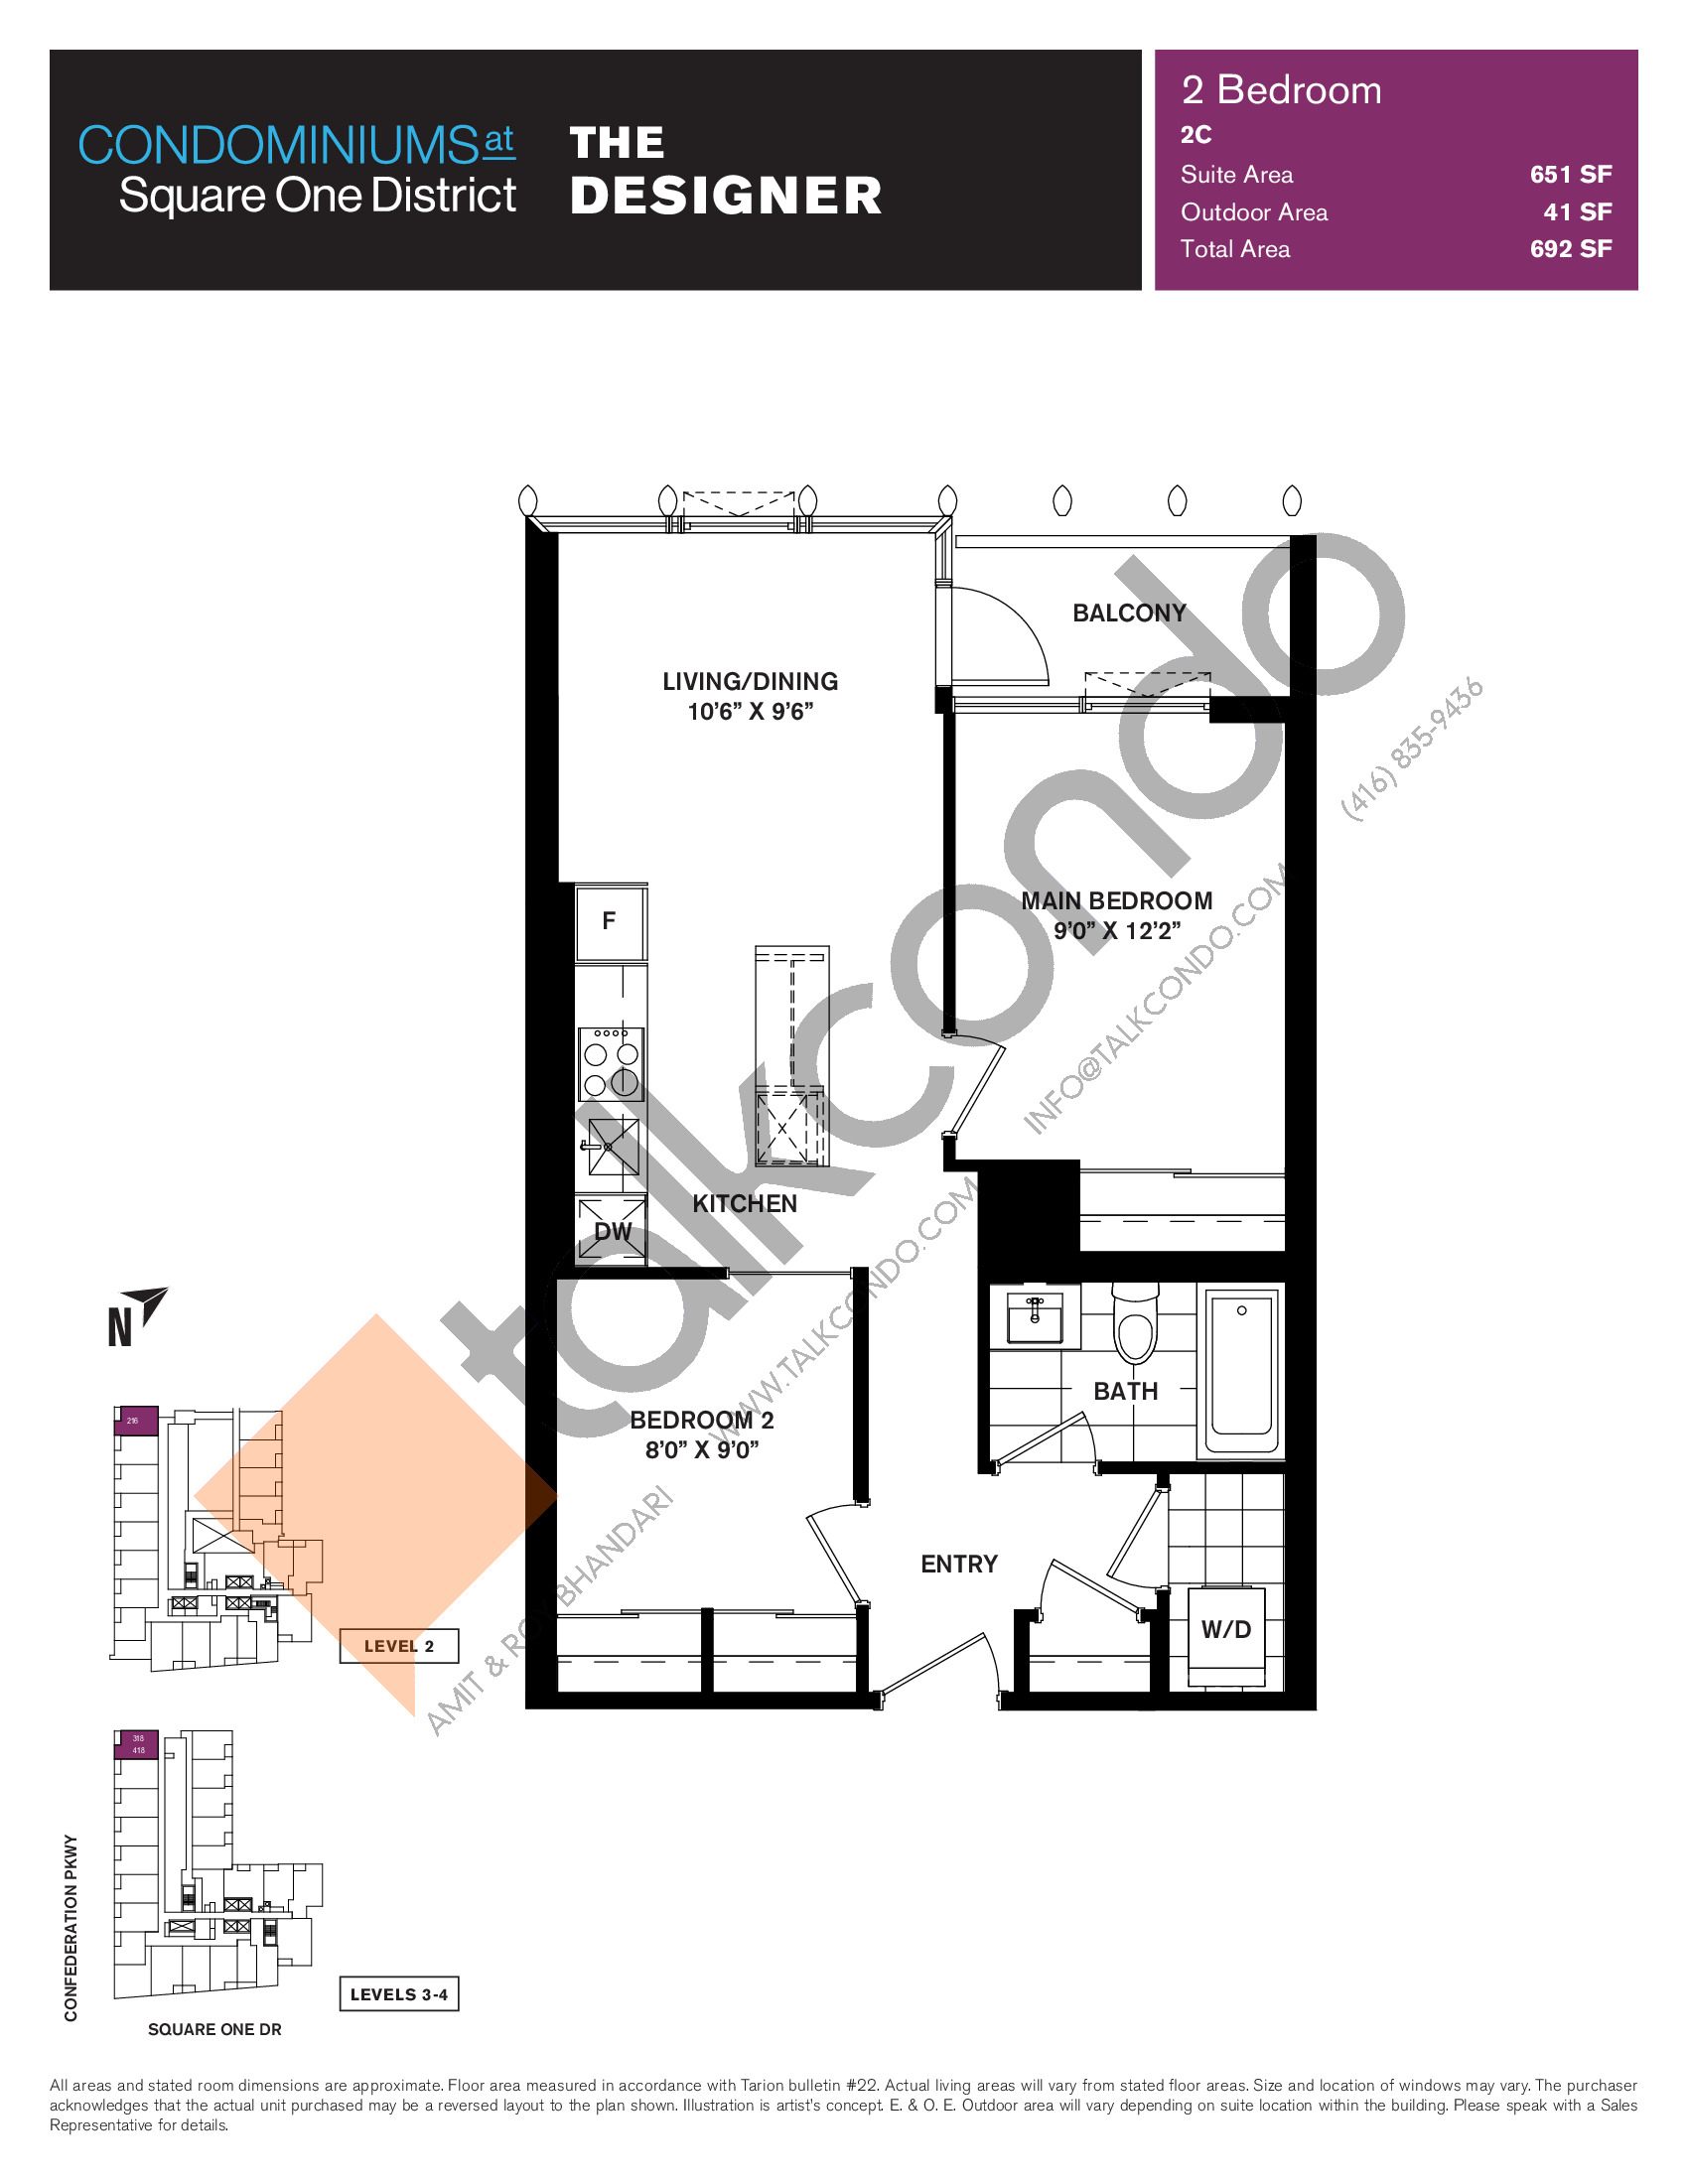 The Designer Floor Plan at Condominiums at Square One District - 651 sq.ft